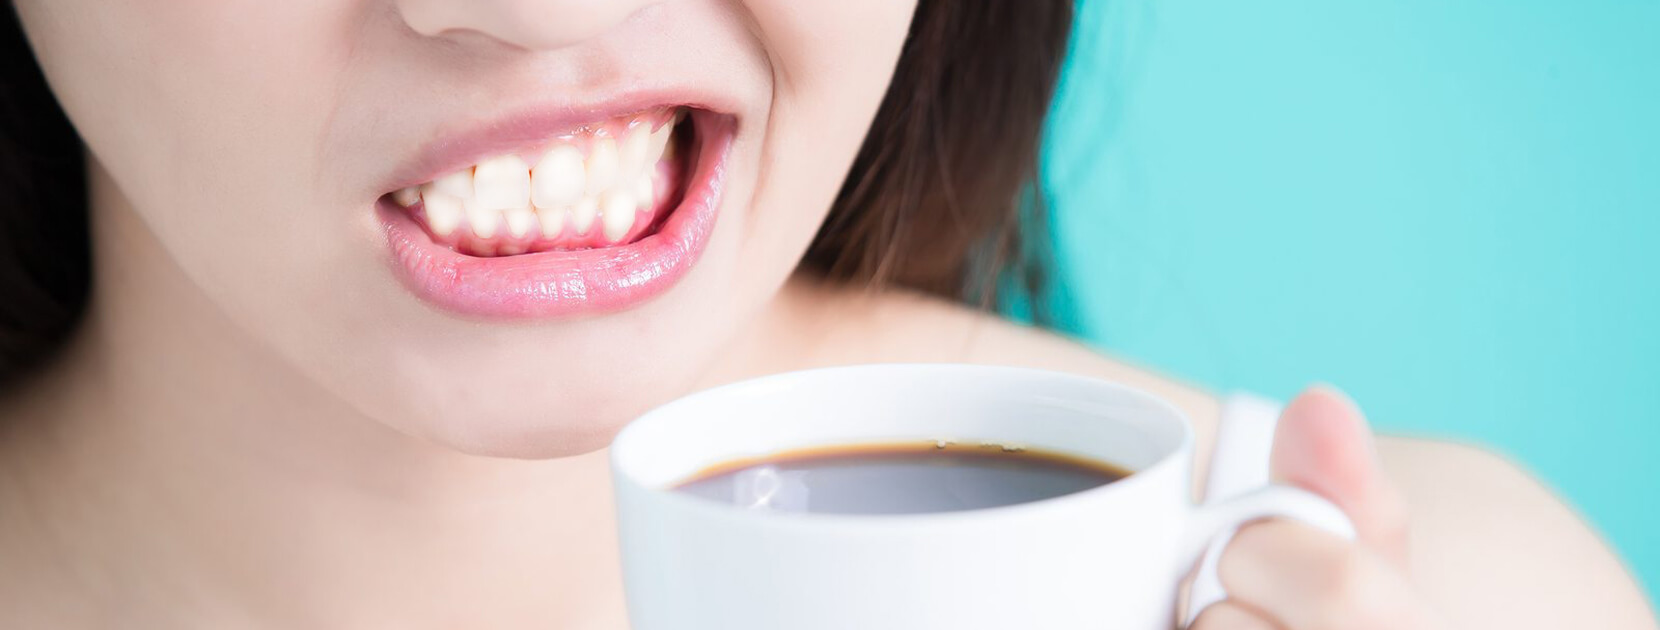 teeth whitening from coffe stain